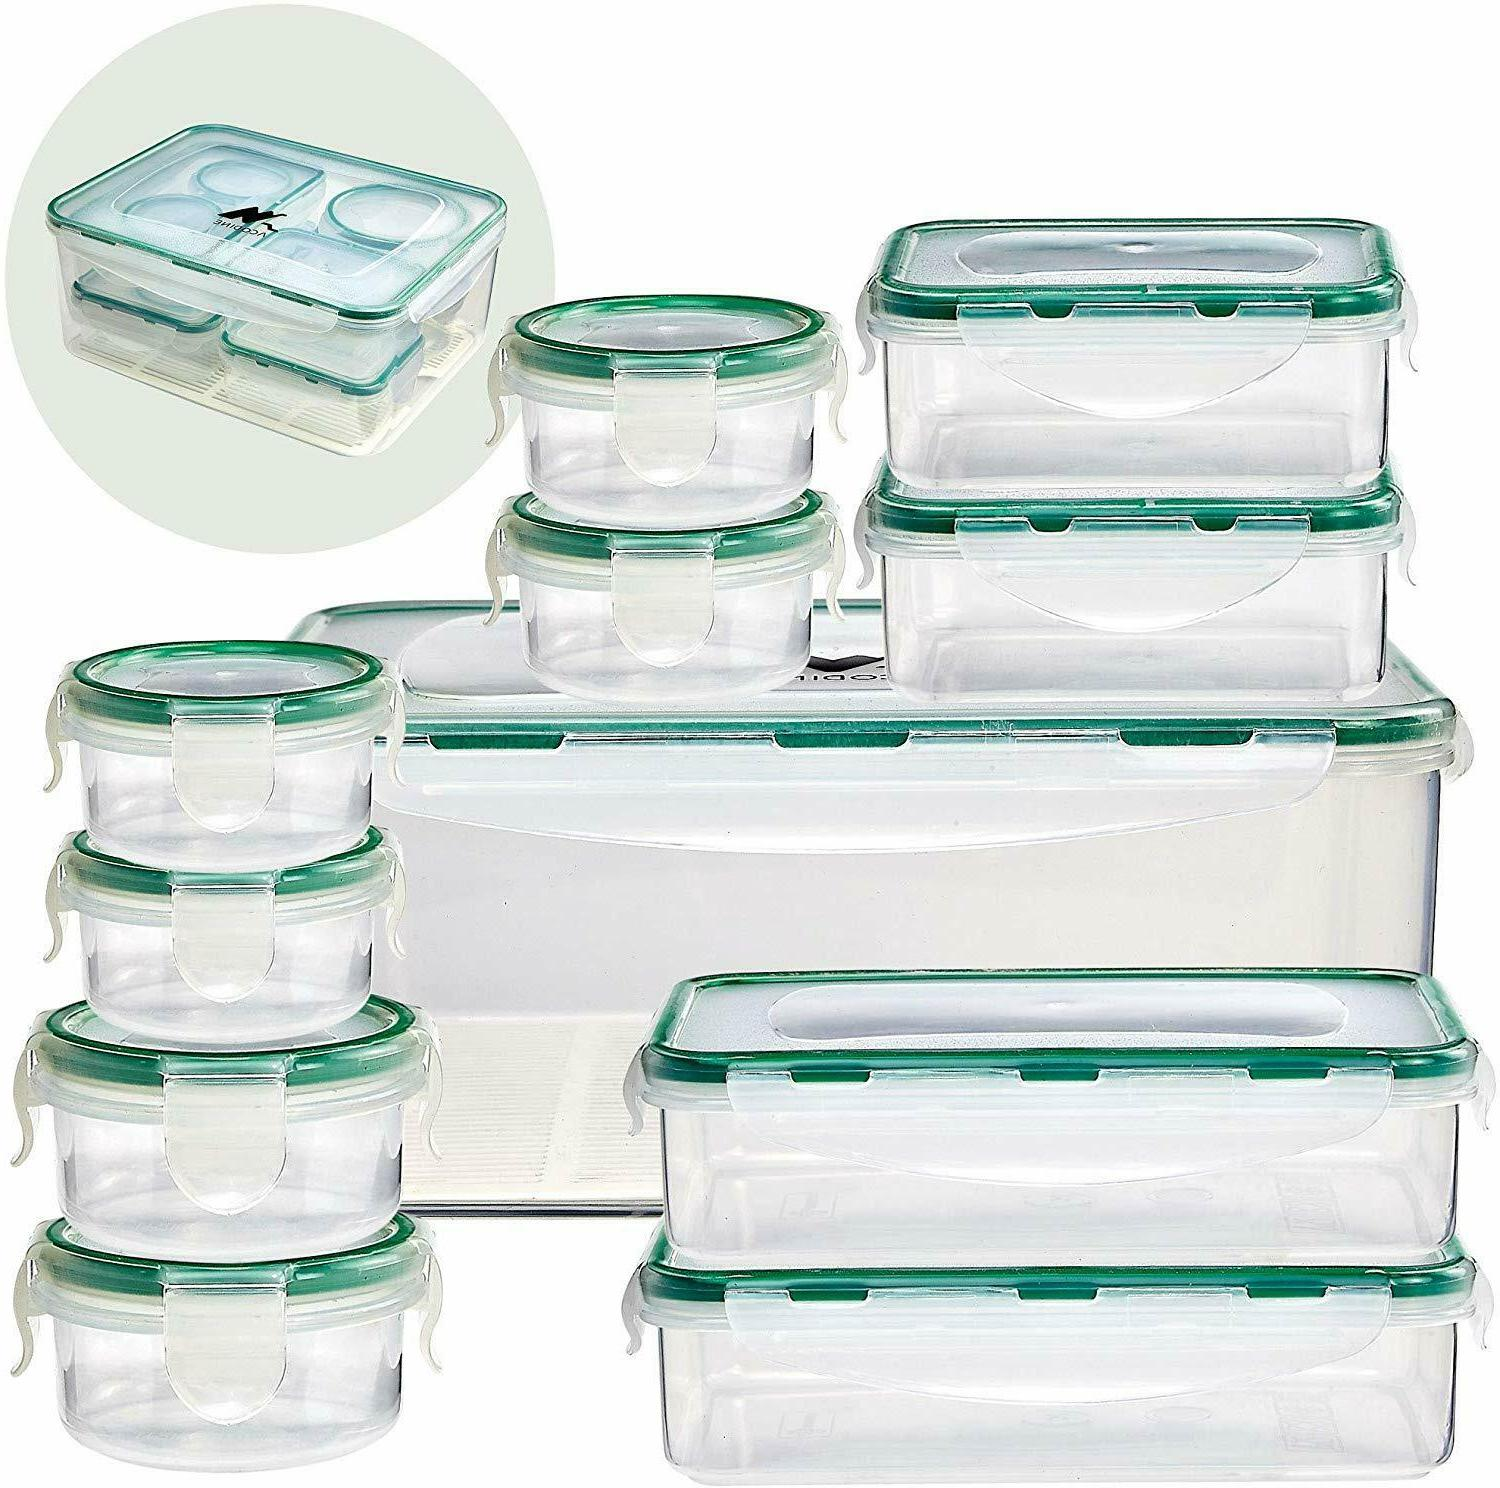 Food Storage Containers set of 11, Clear Airtight Snap Mat